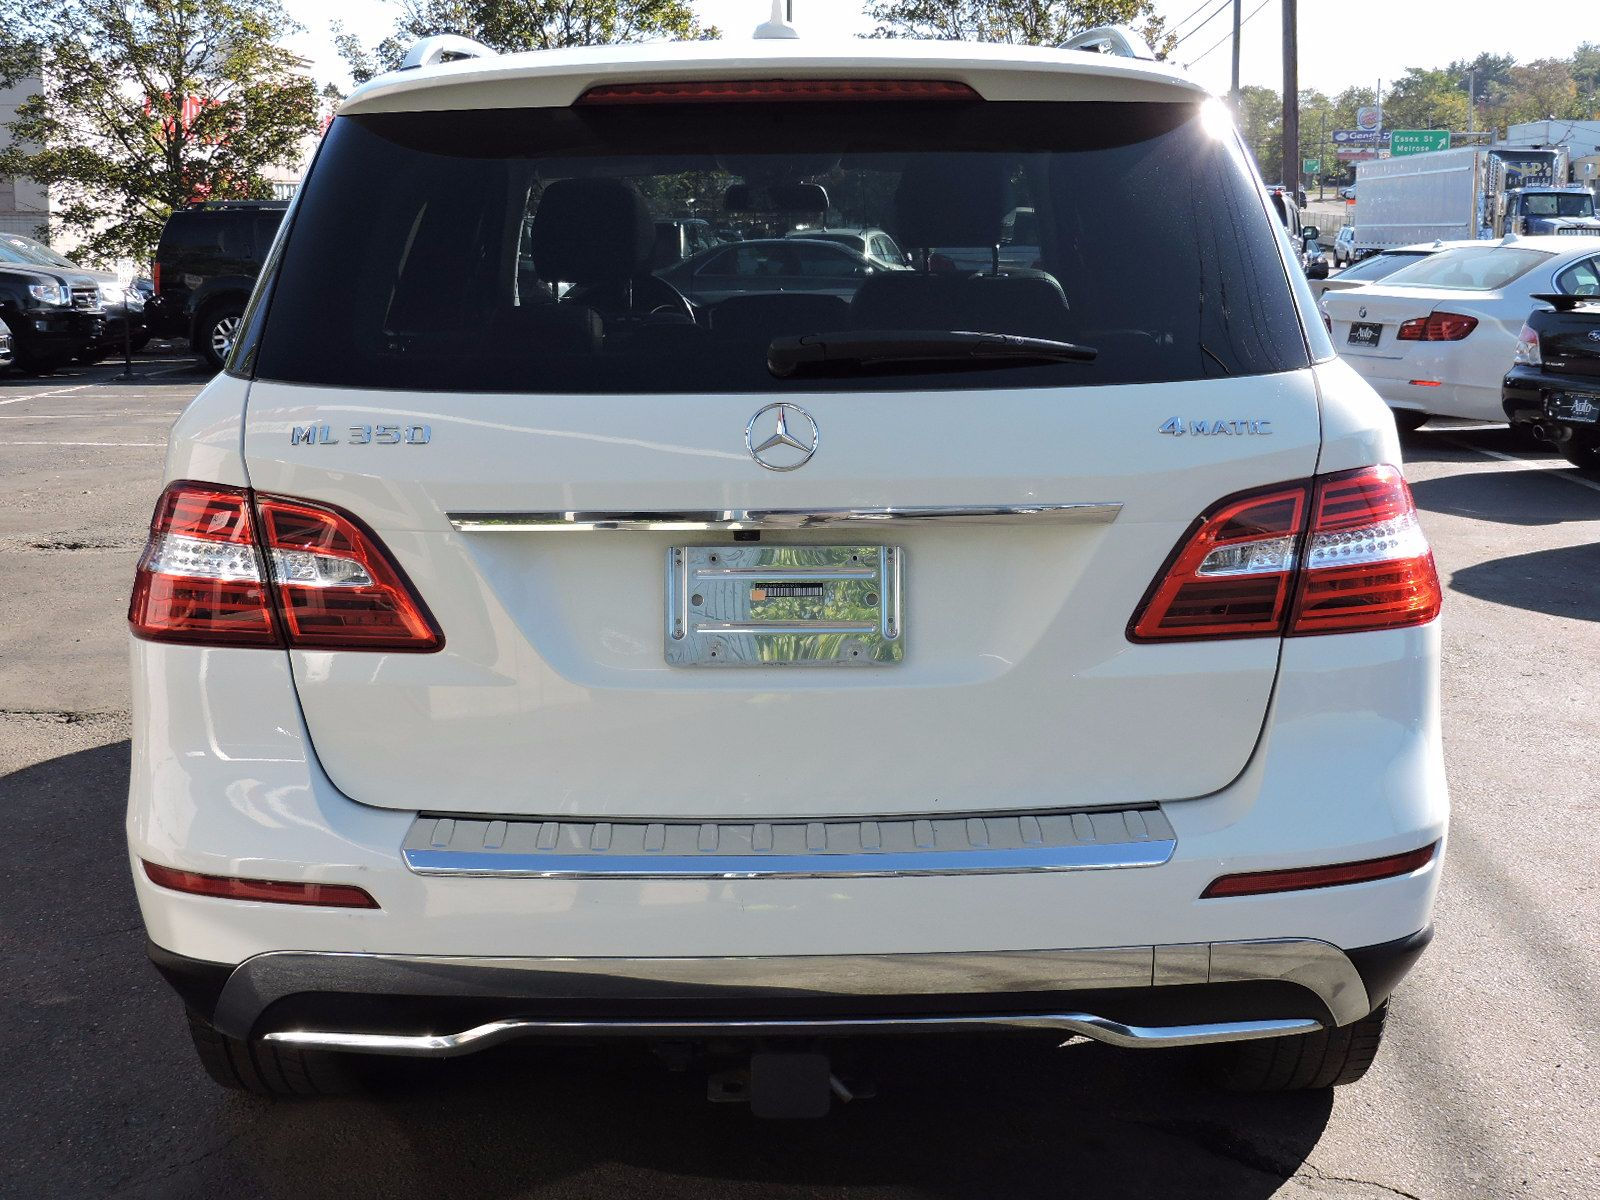 2012 Mercedes-Benz ML 350 4Matic - All Wheel Drive - Navigation